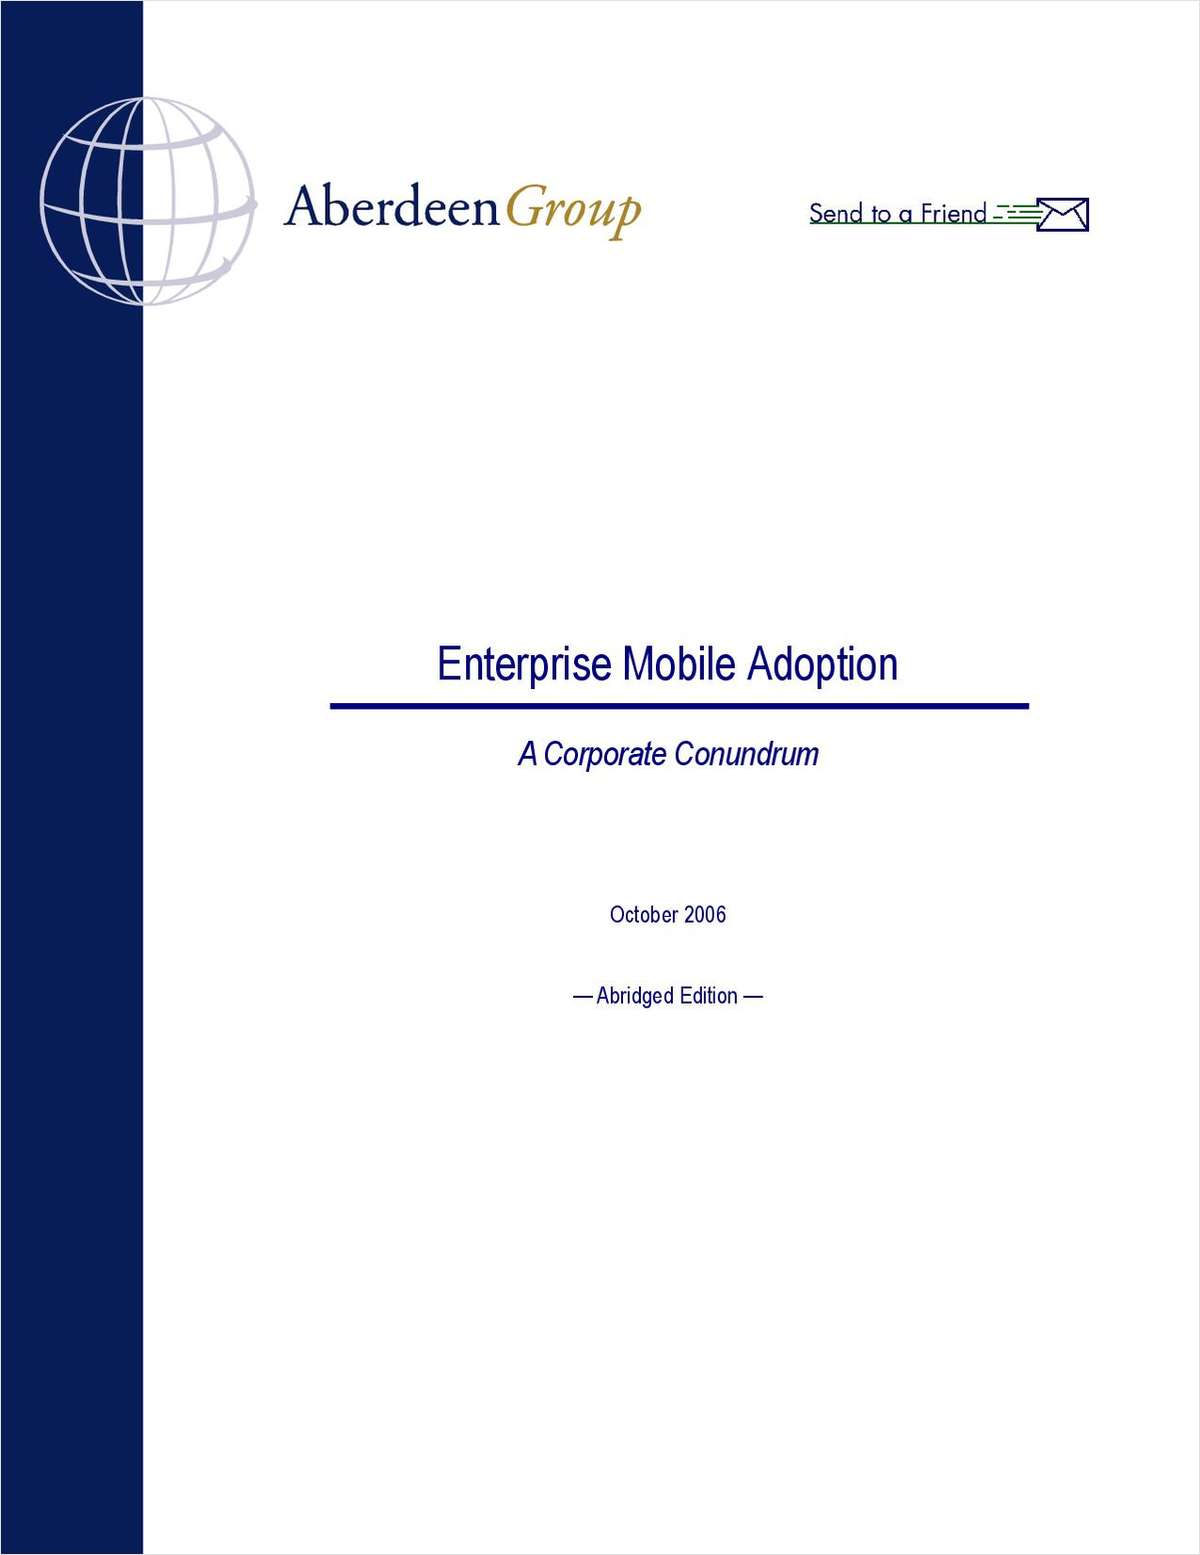 Enterprise Mobile Adoption